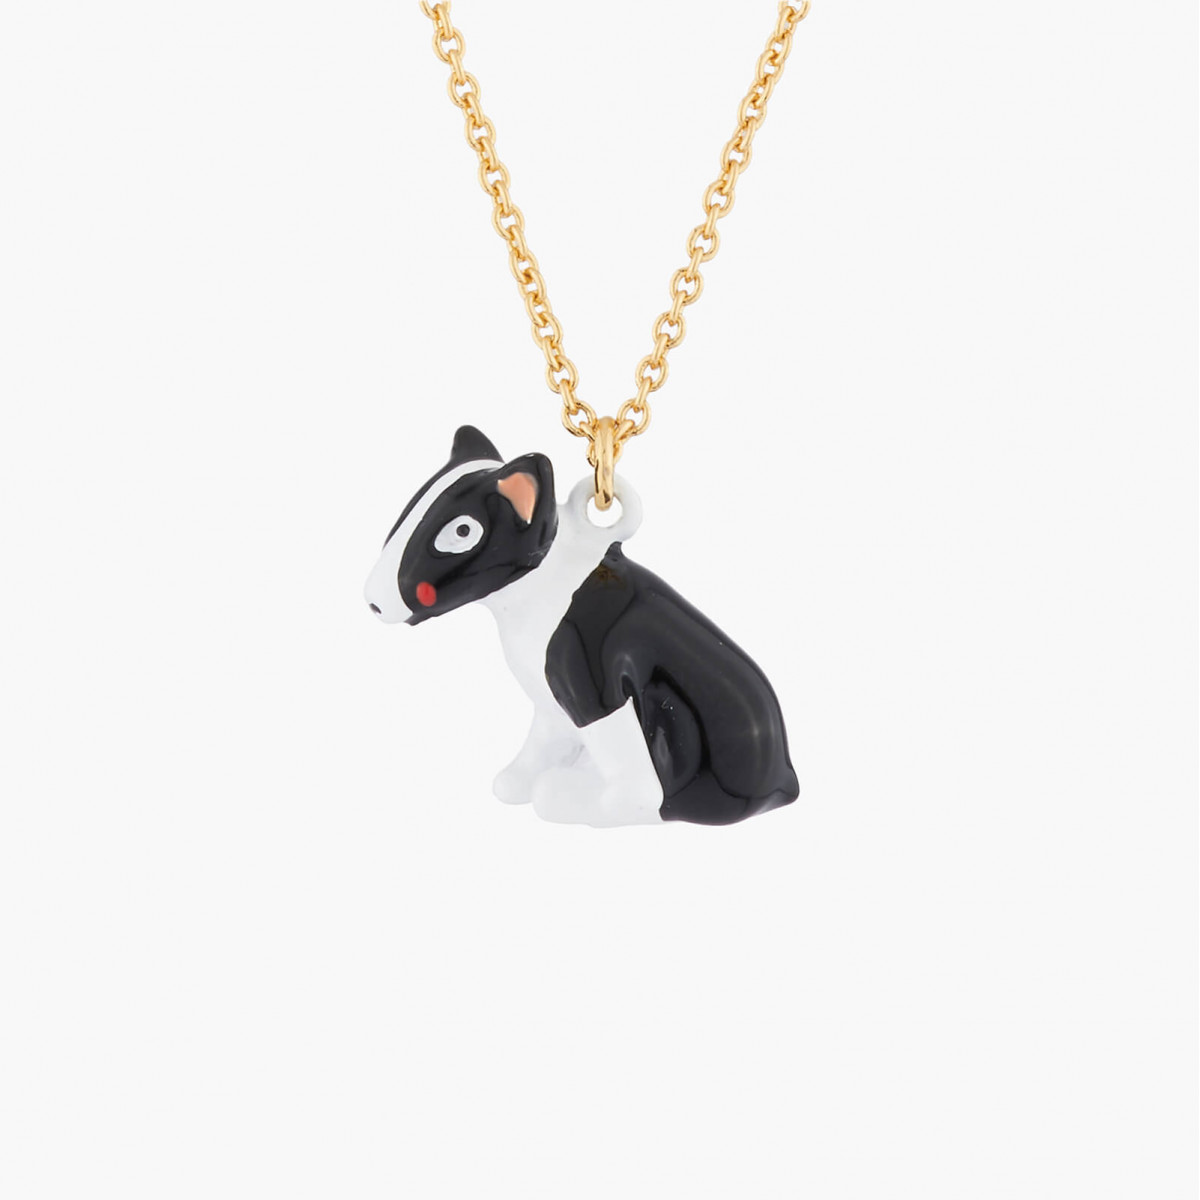 Colliers Collier Pendentif Bull Terrier55,00€ AKNA301/1N2 by Les Néréides